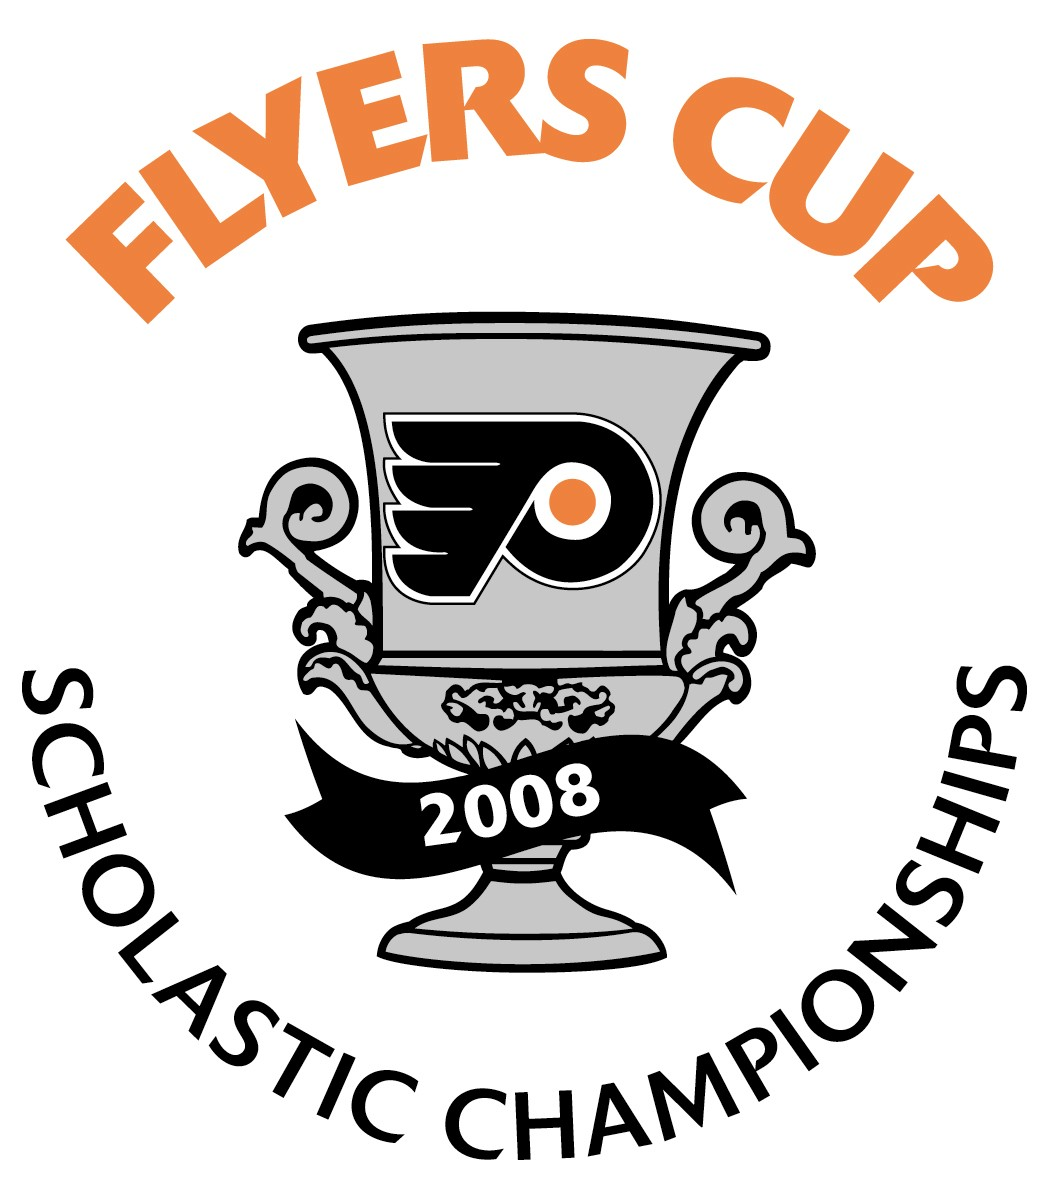 FLyers Cup 2008